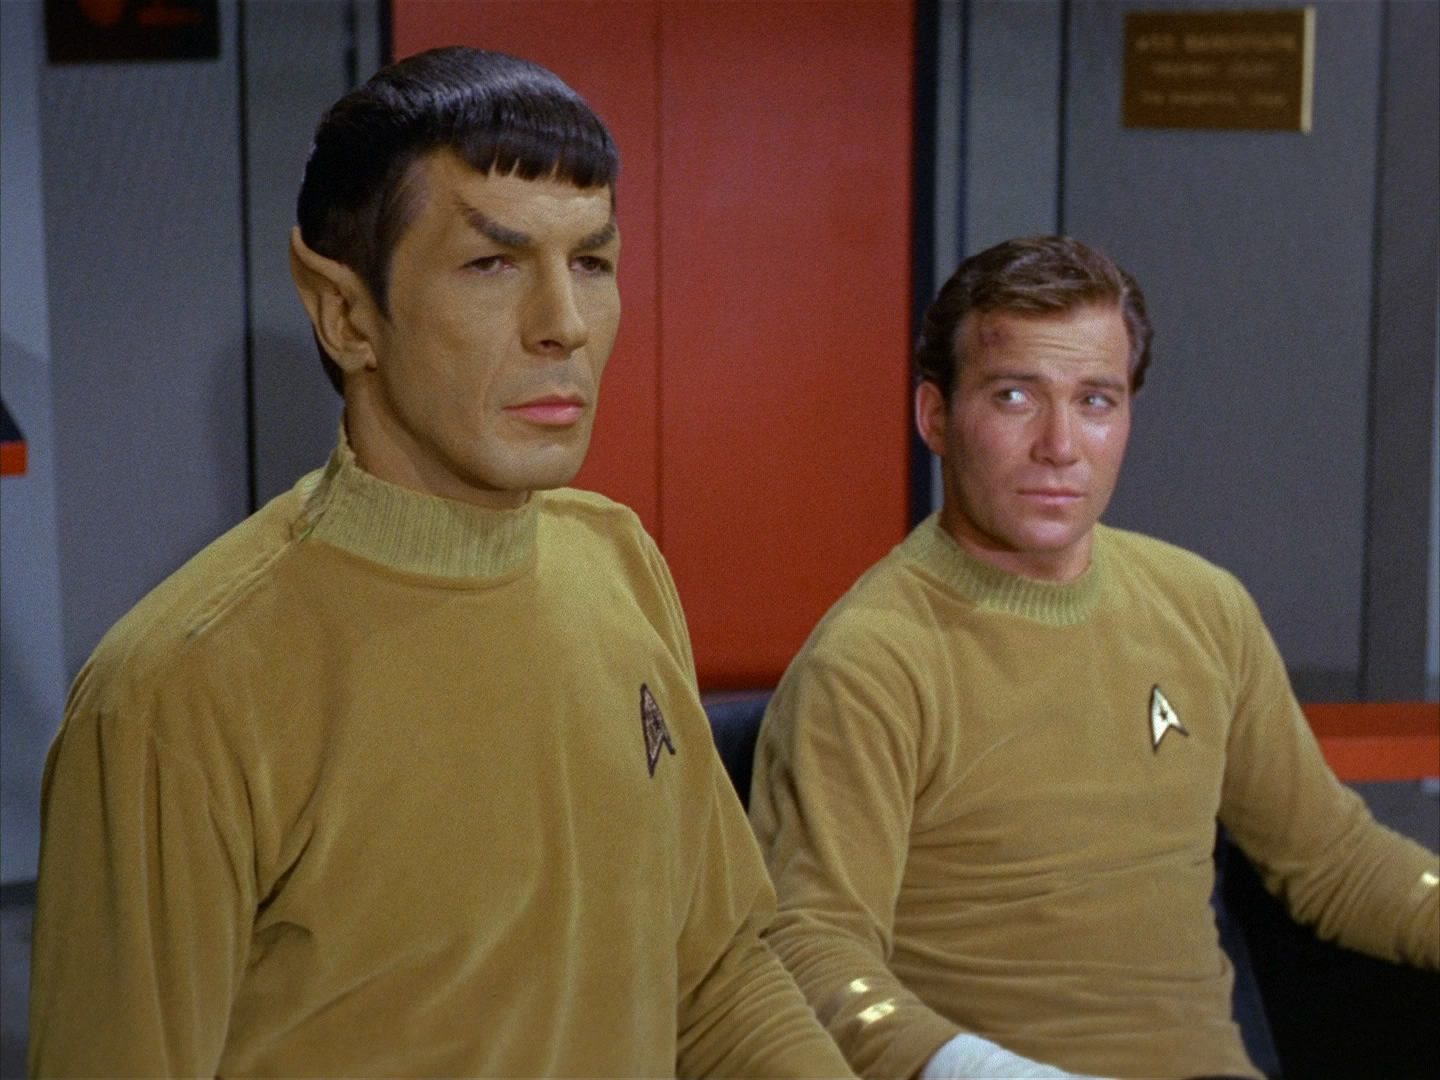 Command division uniforms, male, 2265  Fair Use - this image is copyrighted, but used here under  Fair Use guidelines. Owner/Creator:Paramount Pictures and/or CBS Studios  From left to right, Lieutenant Commander Spock and Captain James Tiberius Kirk  Retreived via http://memory-alpha.wikia.com